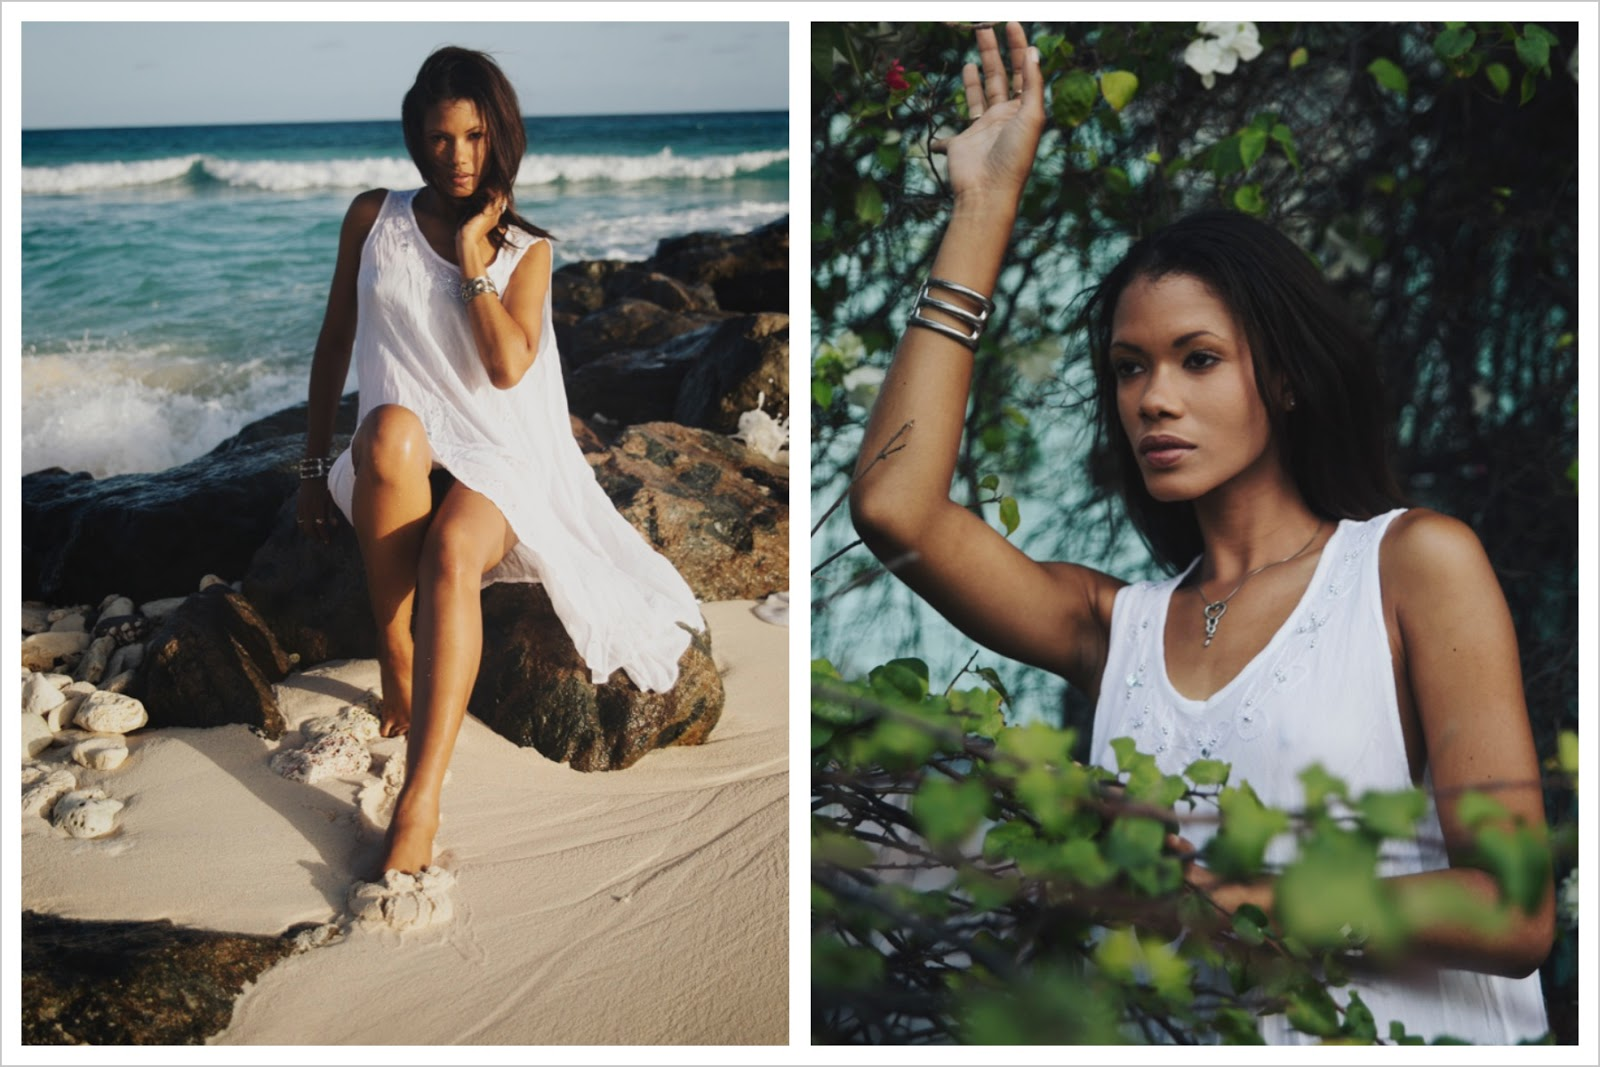 Jillian-xenia-barbados-model-photography-expressive